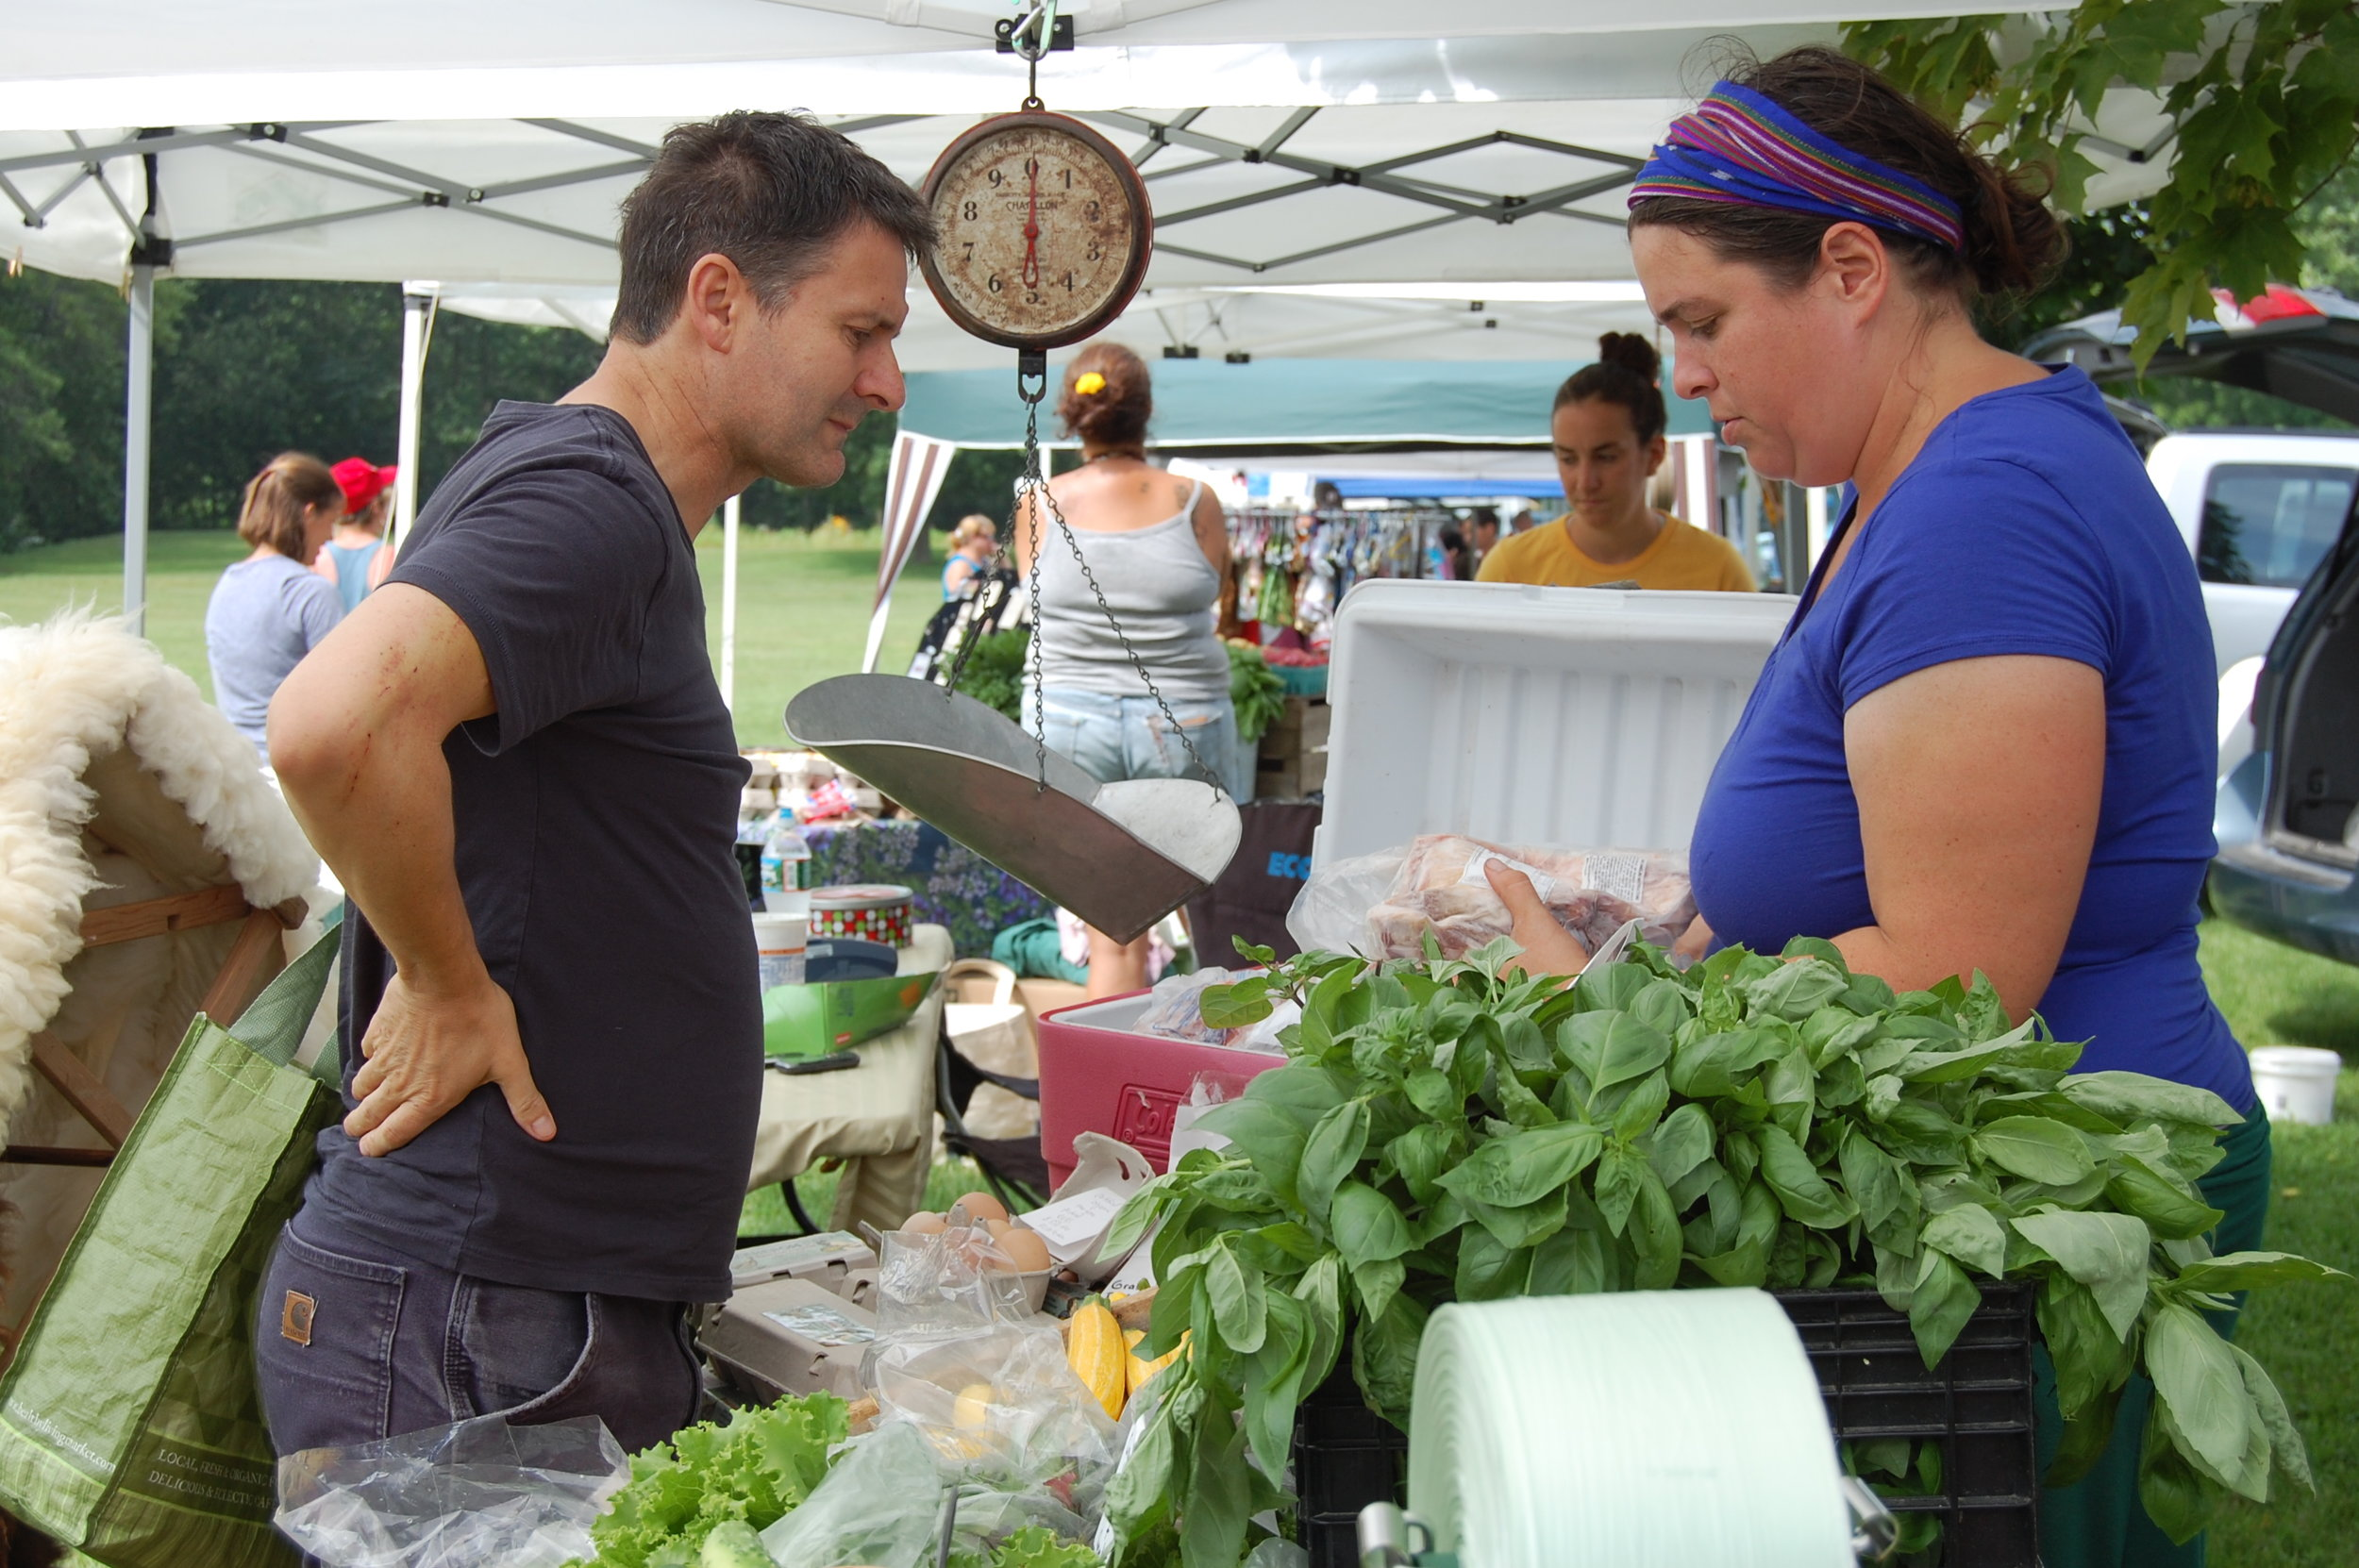 Farmer Christine Bourque shows offerings to a customer at the Champlain Islands Farmers' Market